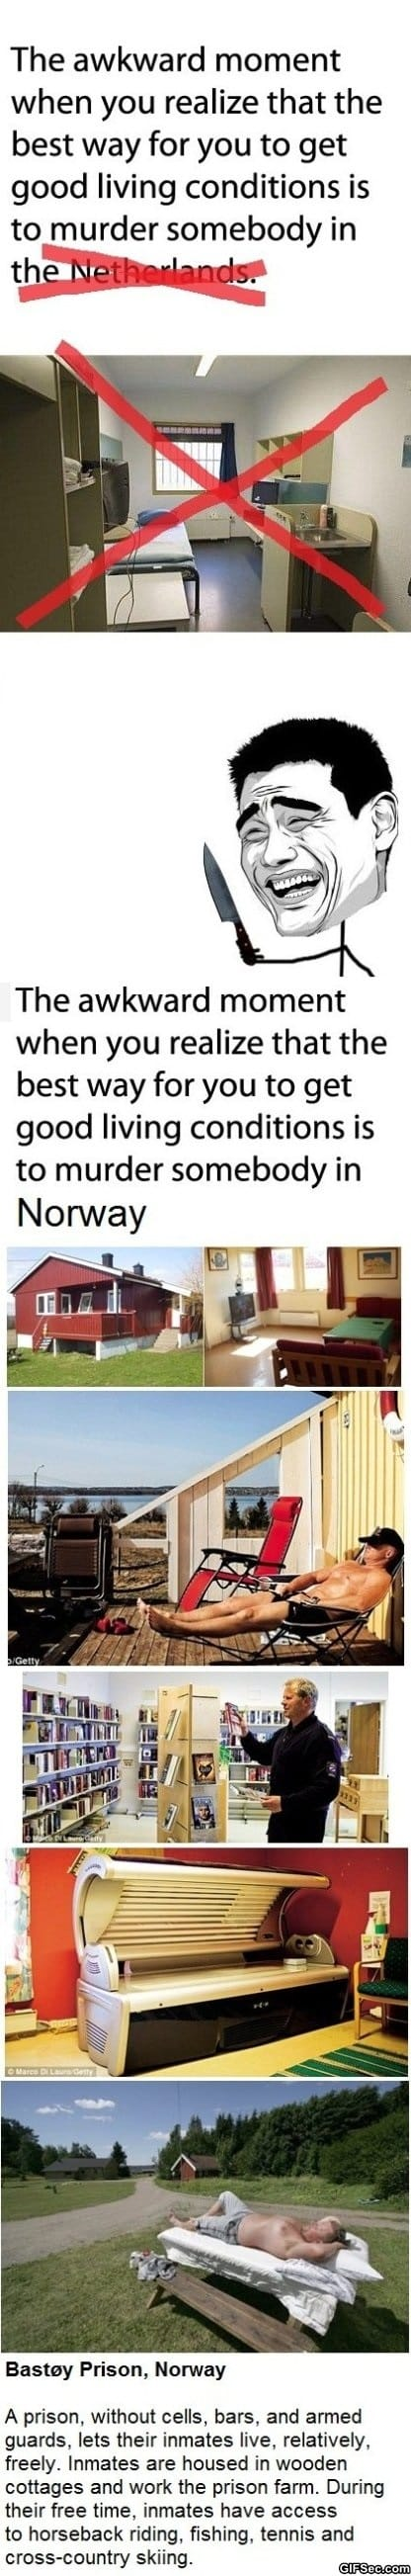 norwegian-prison